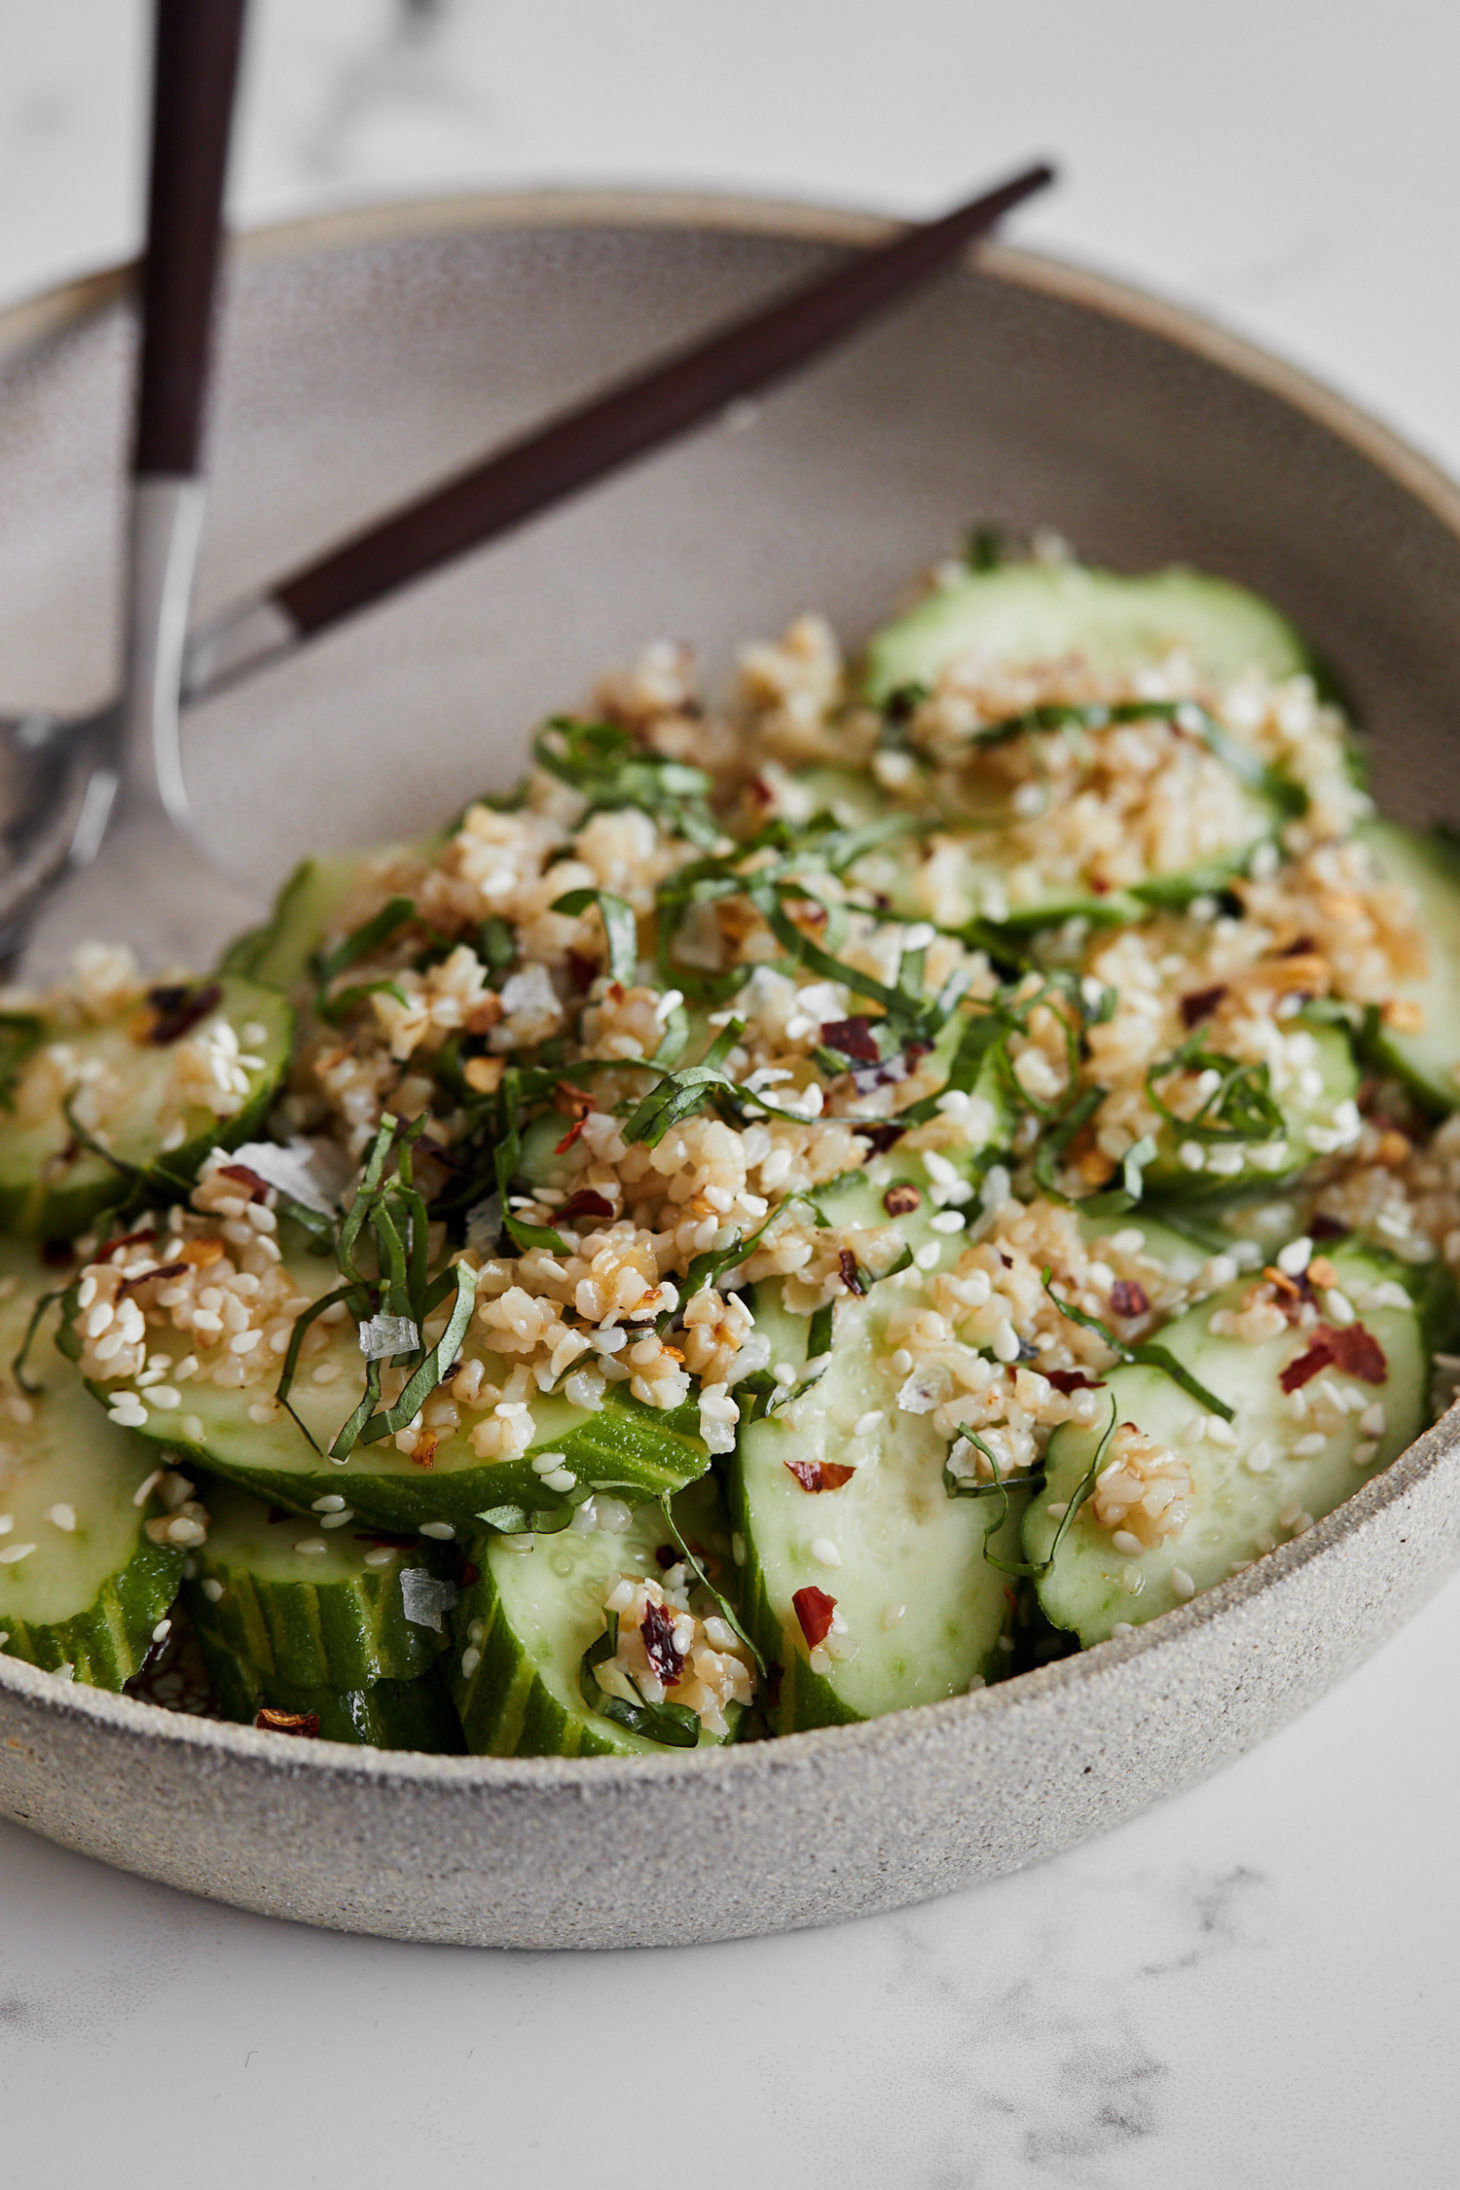 Close-up, side angle photograph of a cucumber salad tossed with bulgur and sesame seeds.